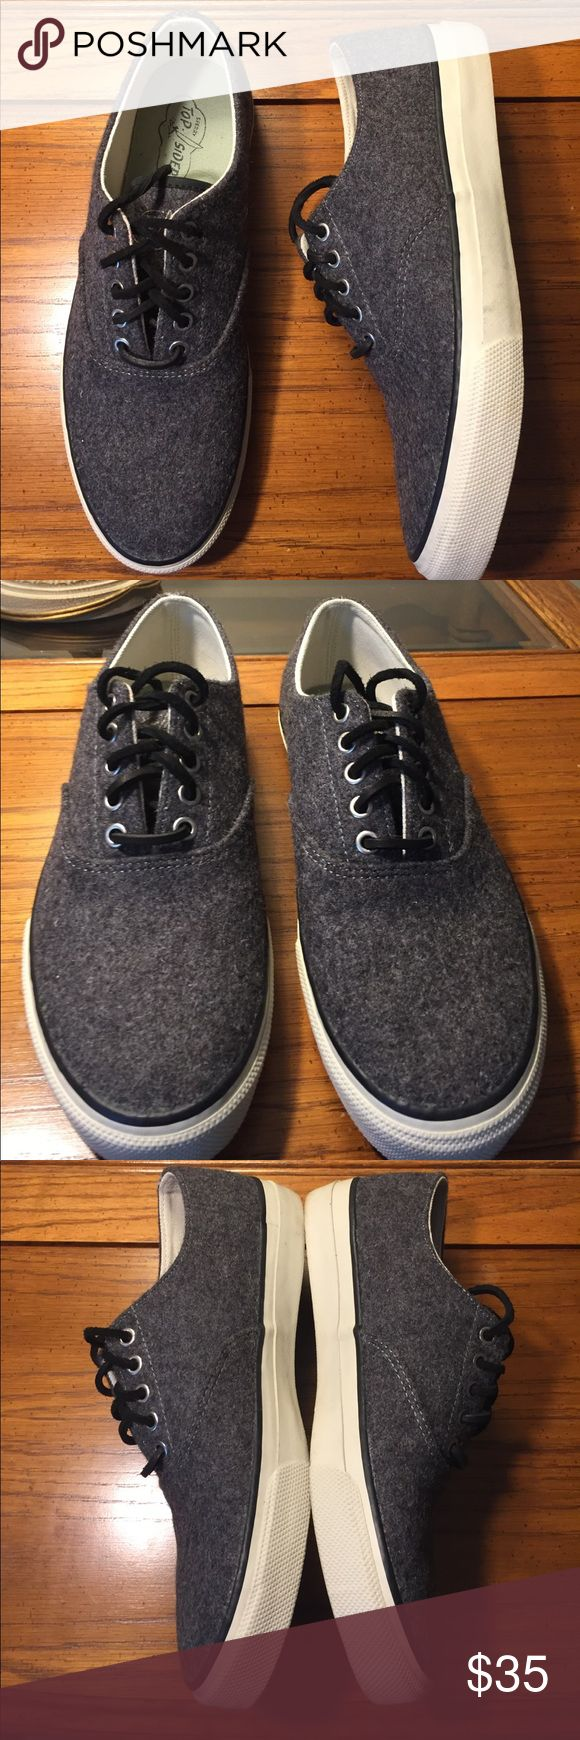 Men's Sperry Top-Sider Grey Wool Sneaker Excellent condition.  Men's 8 1/2 Sperry Top-sider shoe.  - High Quality Cotton Canvas Upper for Breathability and Comfort - Padded Tongue and Collar for Added Comfort Around the Foot Sperry Top-Sider Shoes Sneakers